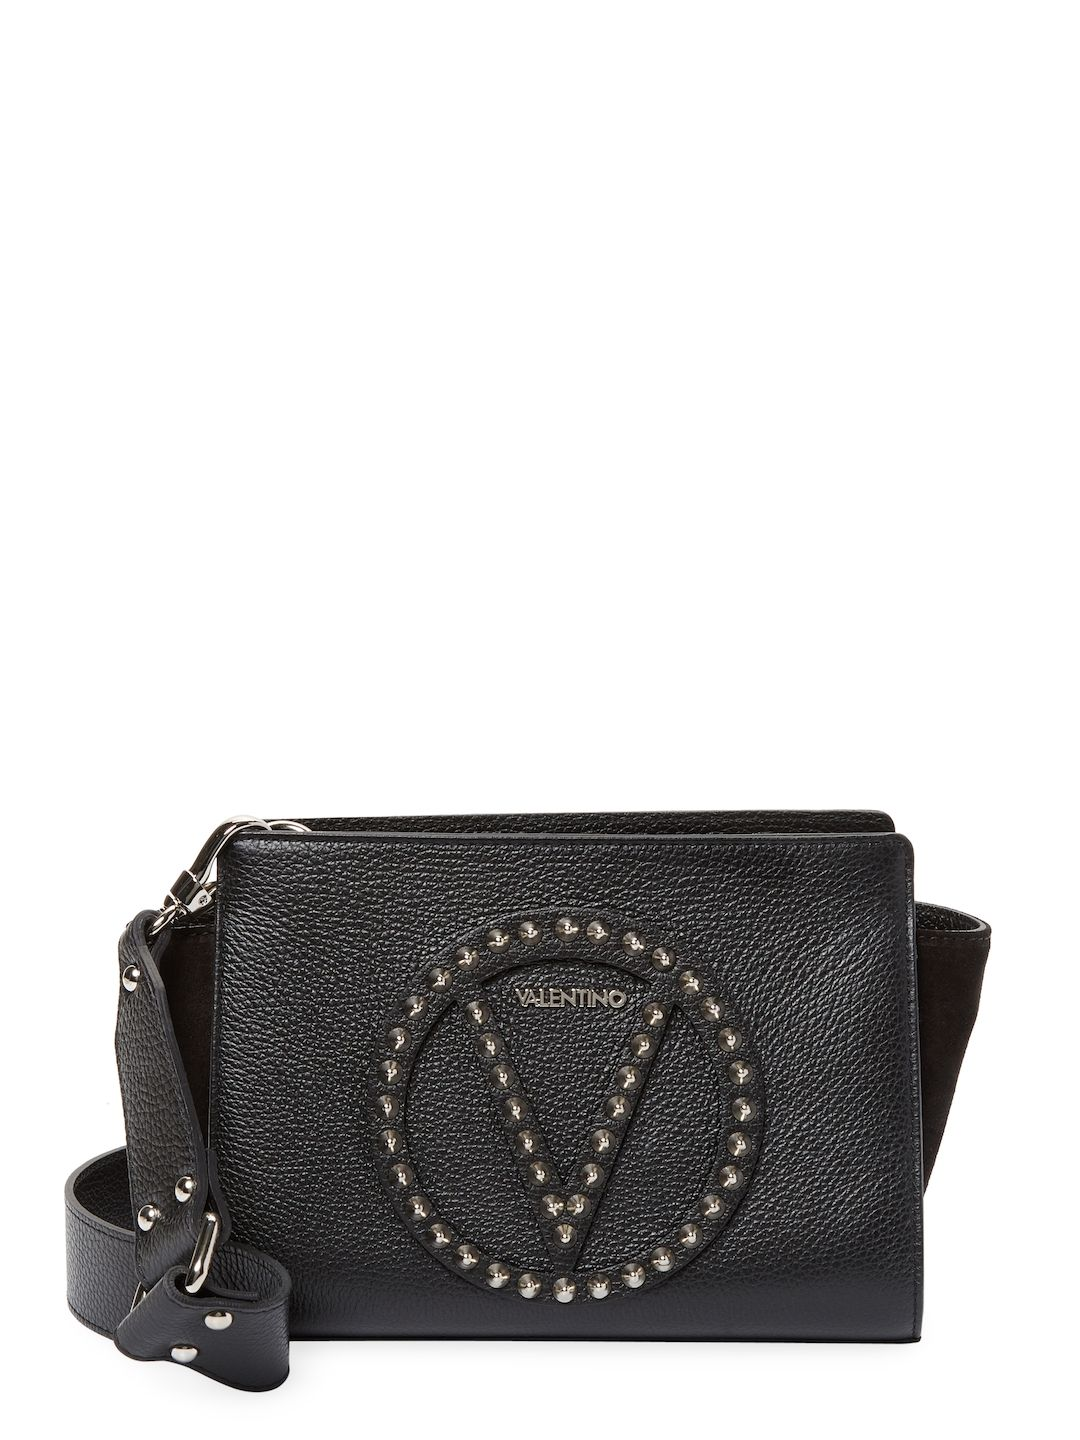 d0a8c34c6d661 VALENTINO BY MARIO VALENTINO KIKI ROCK STUDDED CROSSBODY BAG.   valentinobymariovalentino  bags  shoulder bags  leather  crossbody